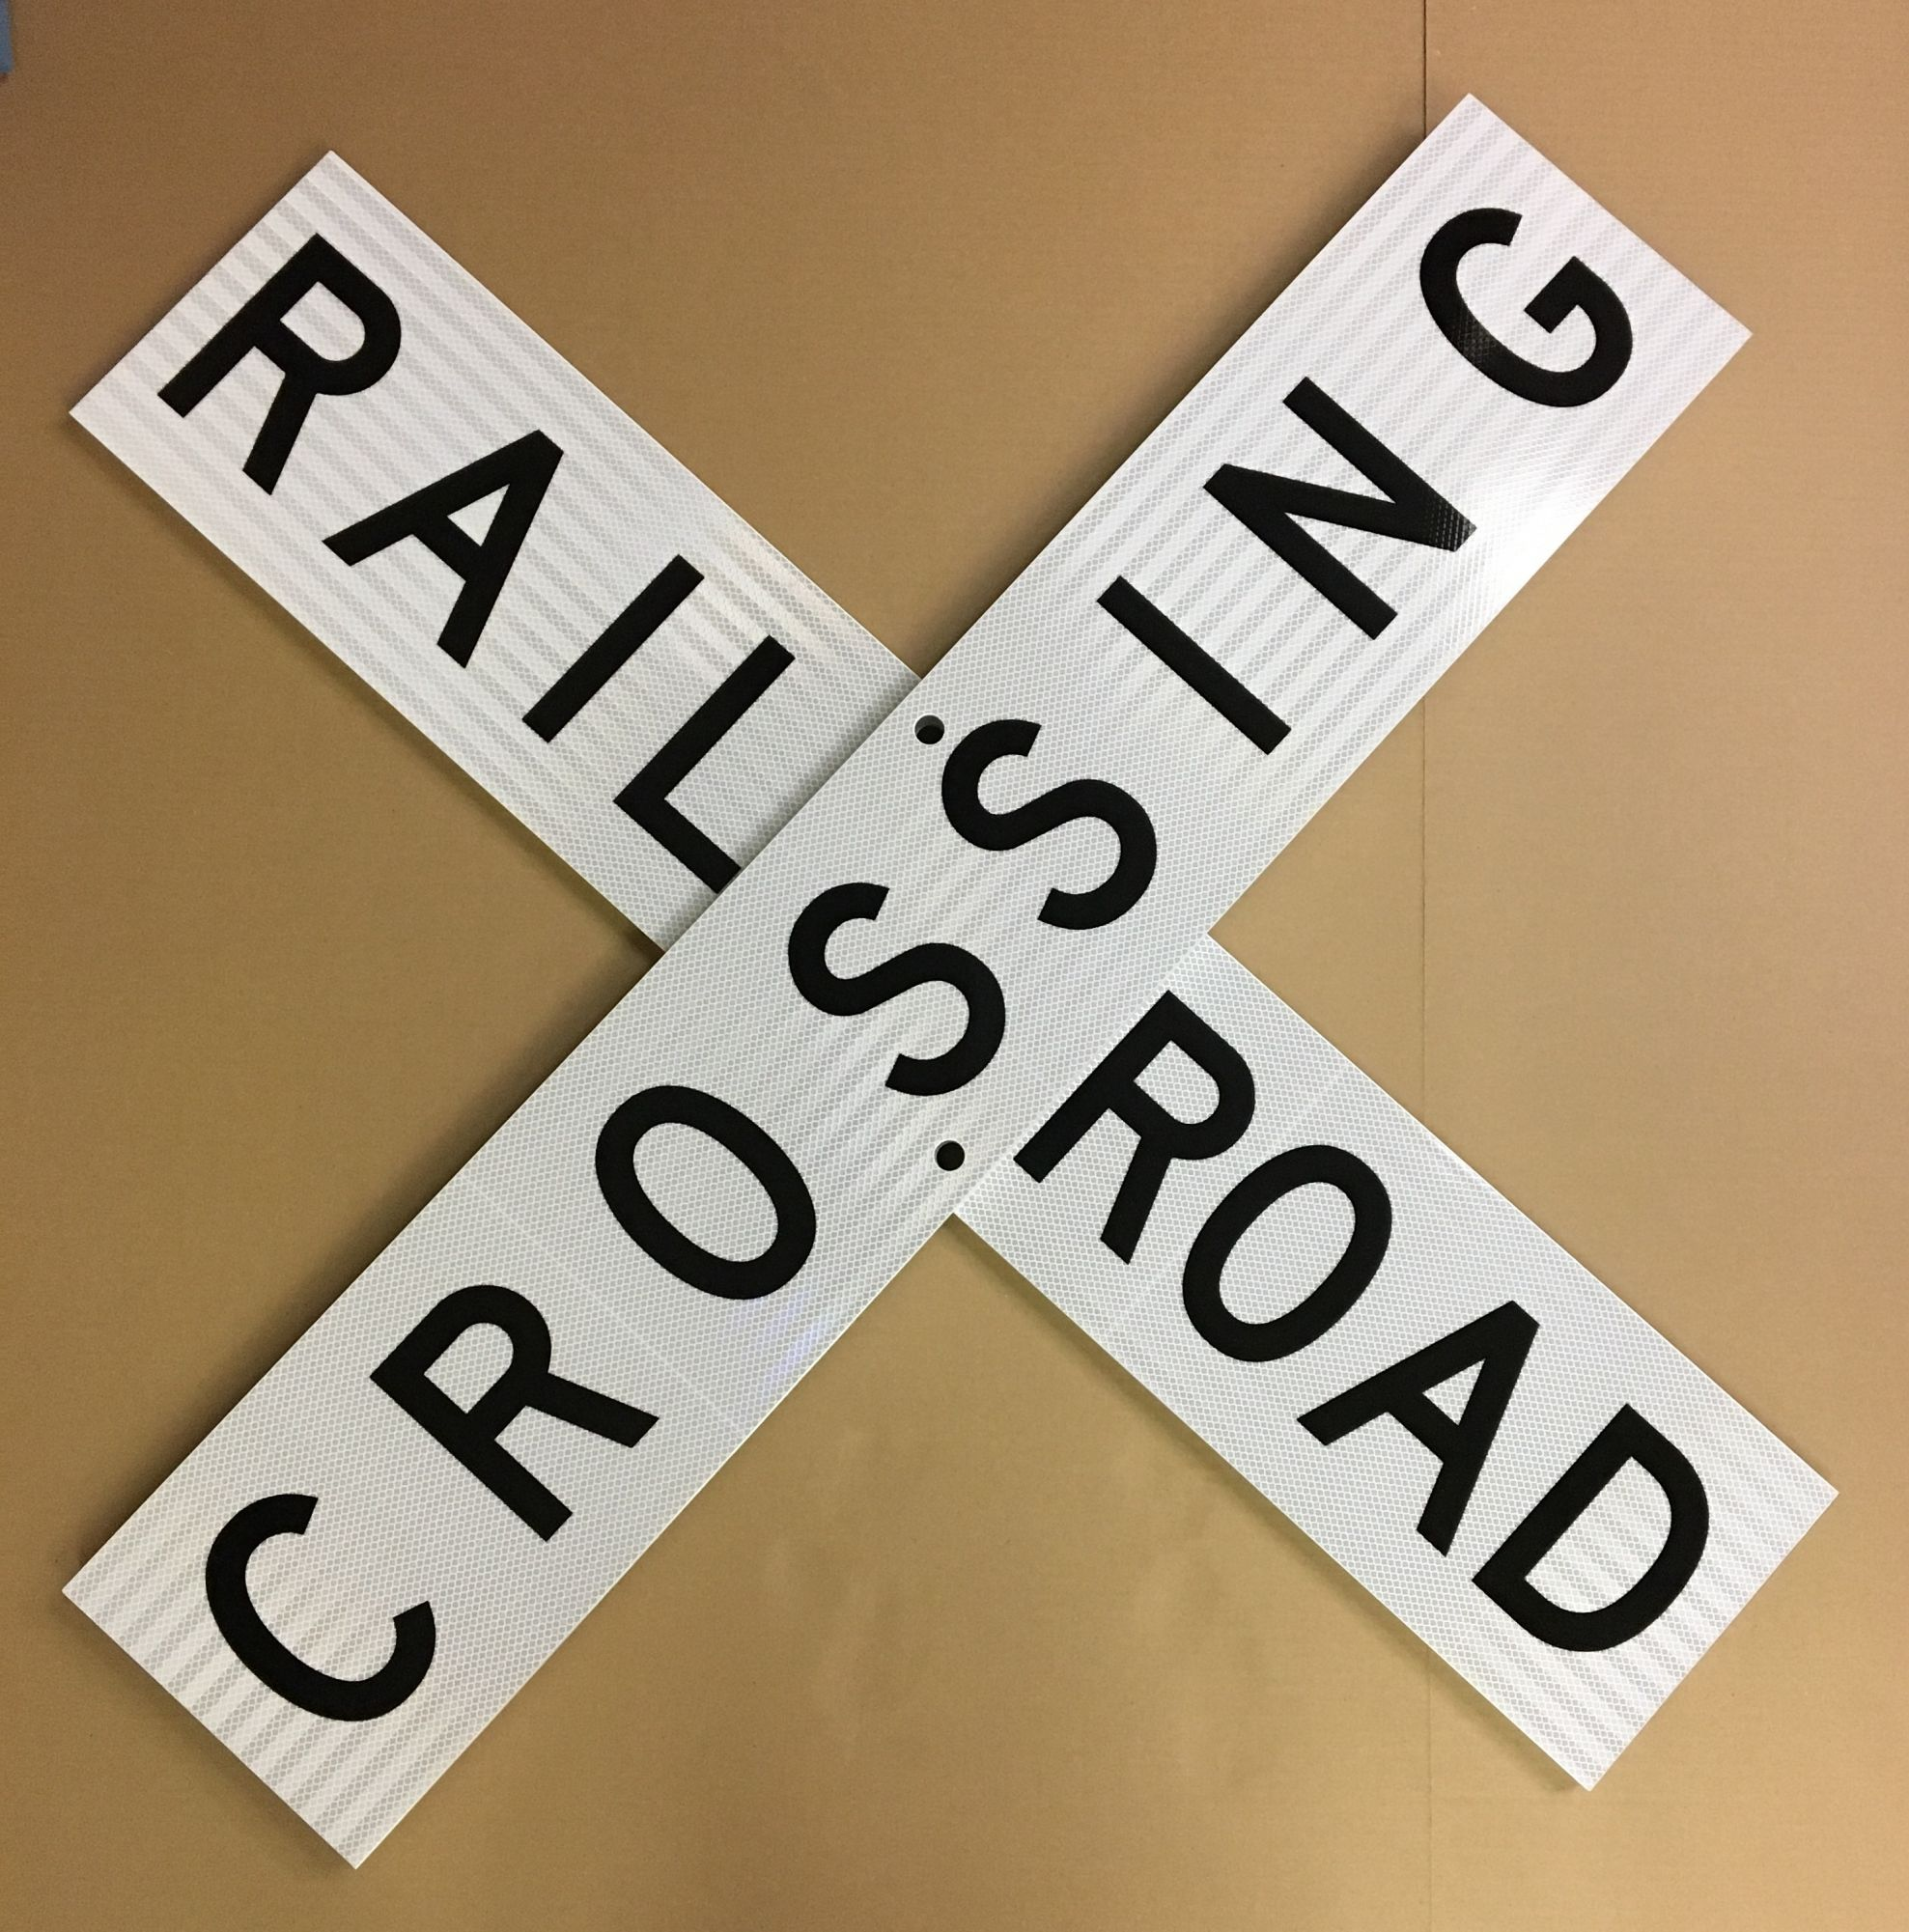 Railroad Crossing Signs. Slider Signs. Number 7 Signs Of Stroke. Womb Signs Of Stroke. Hazardous Chemical Signs Of Stroke. Santa Signs Of Stroke. Coffe Signs. Advanced Stage Signs. Nov Signs Of Stroke